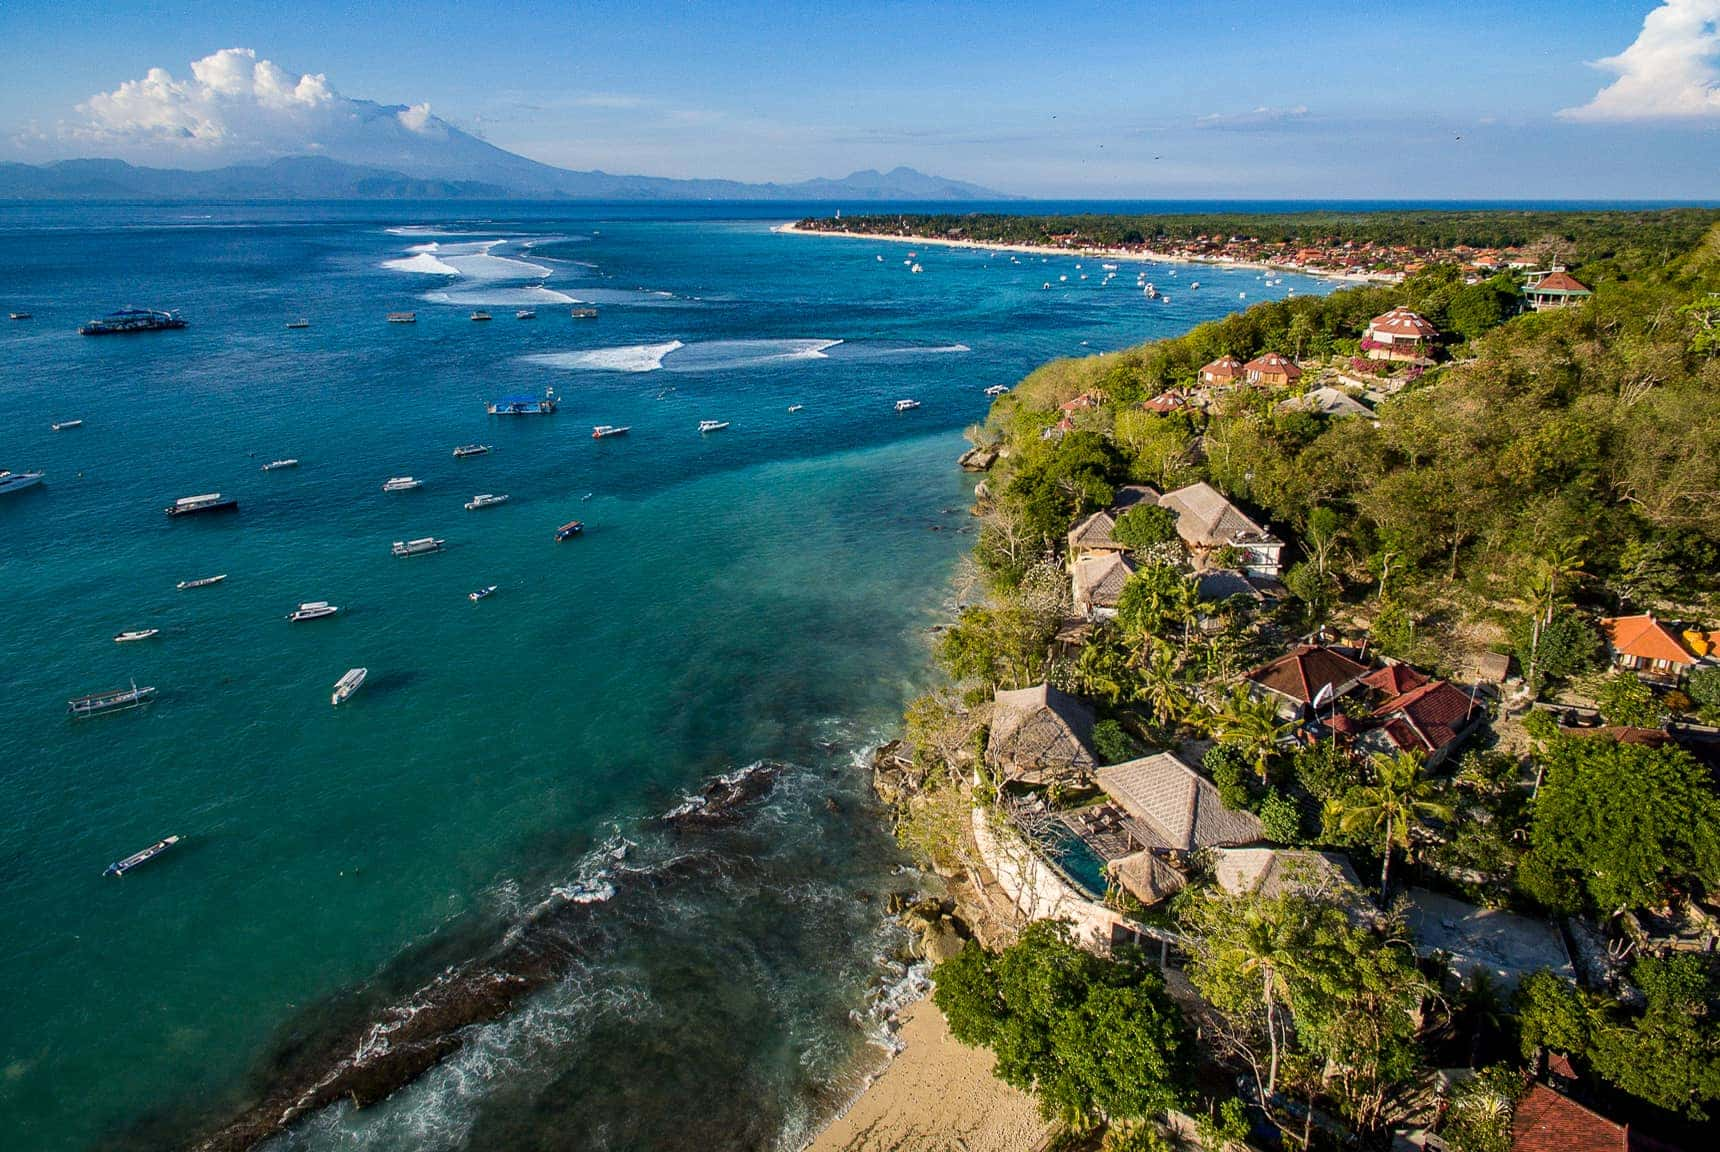 aerial drone views over Villa Sayang on Nusa Lembongan